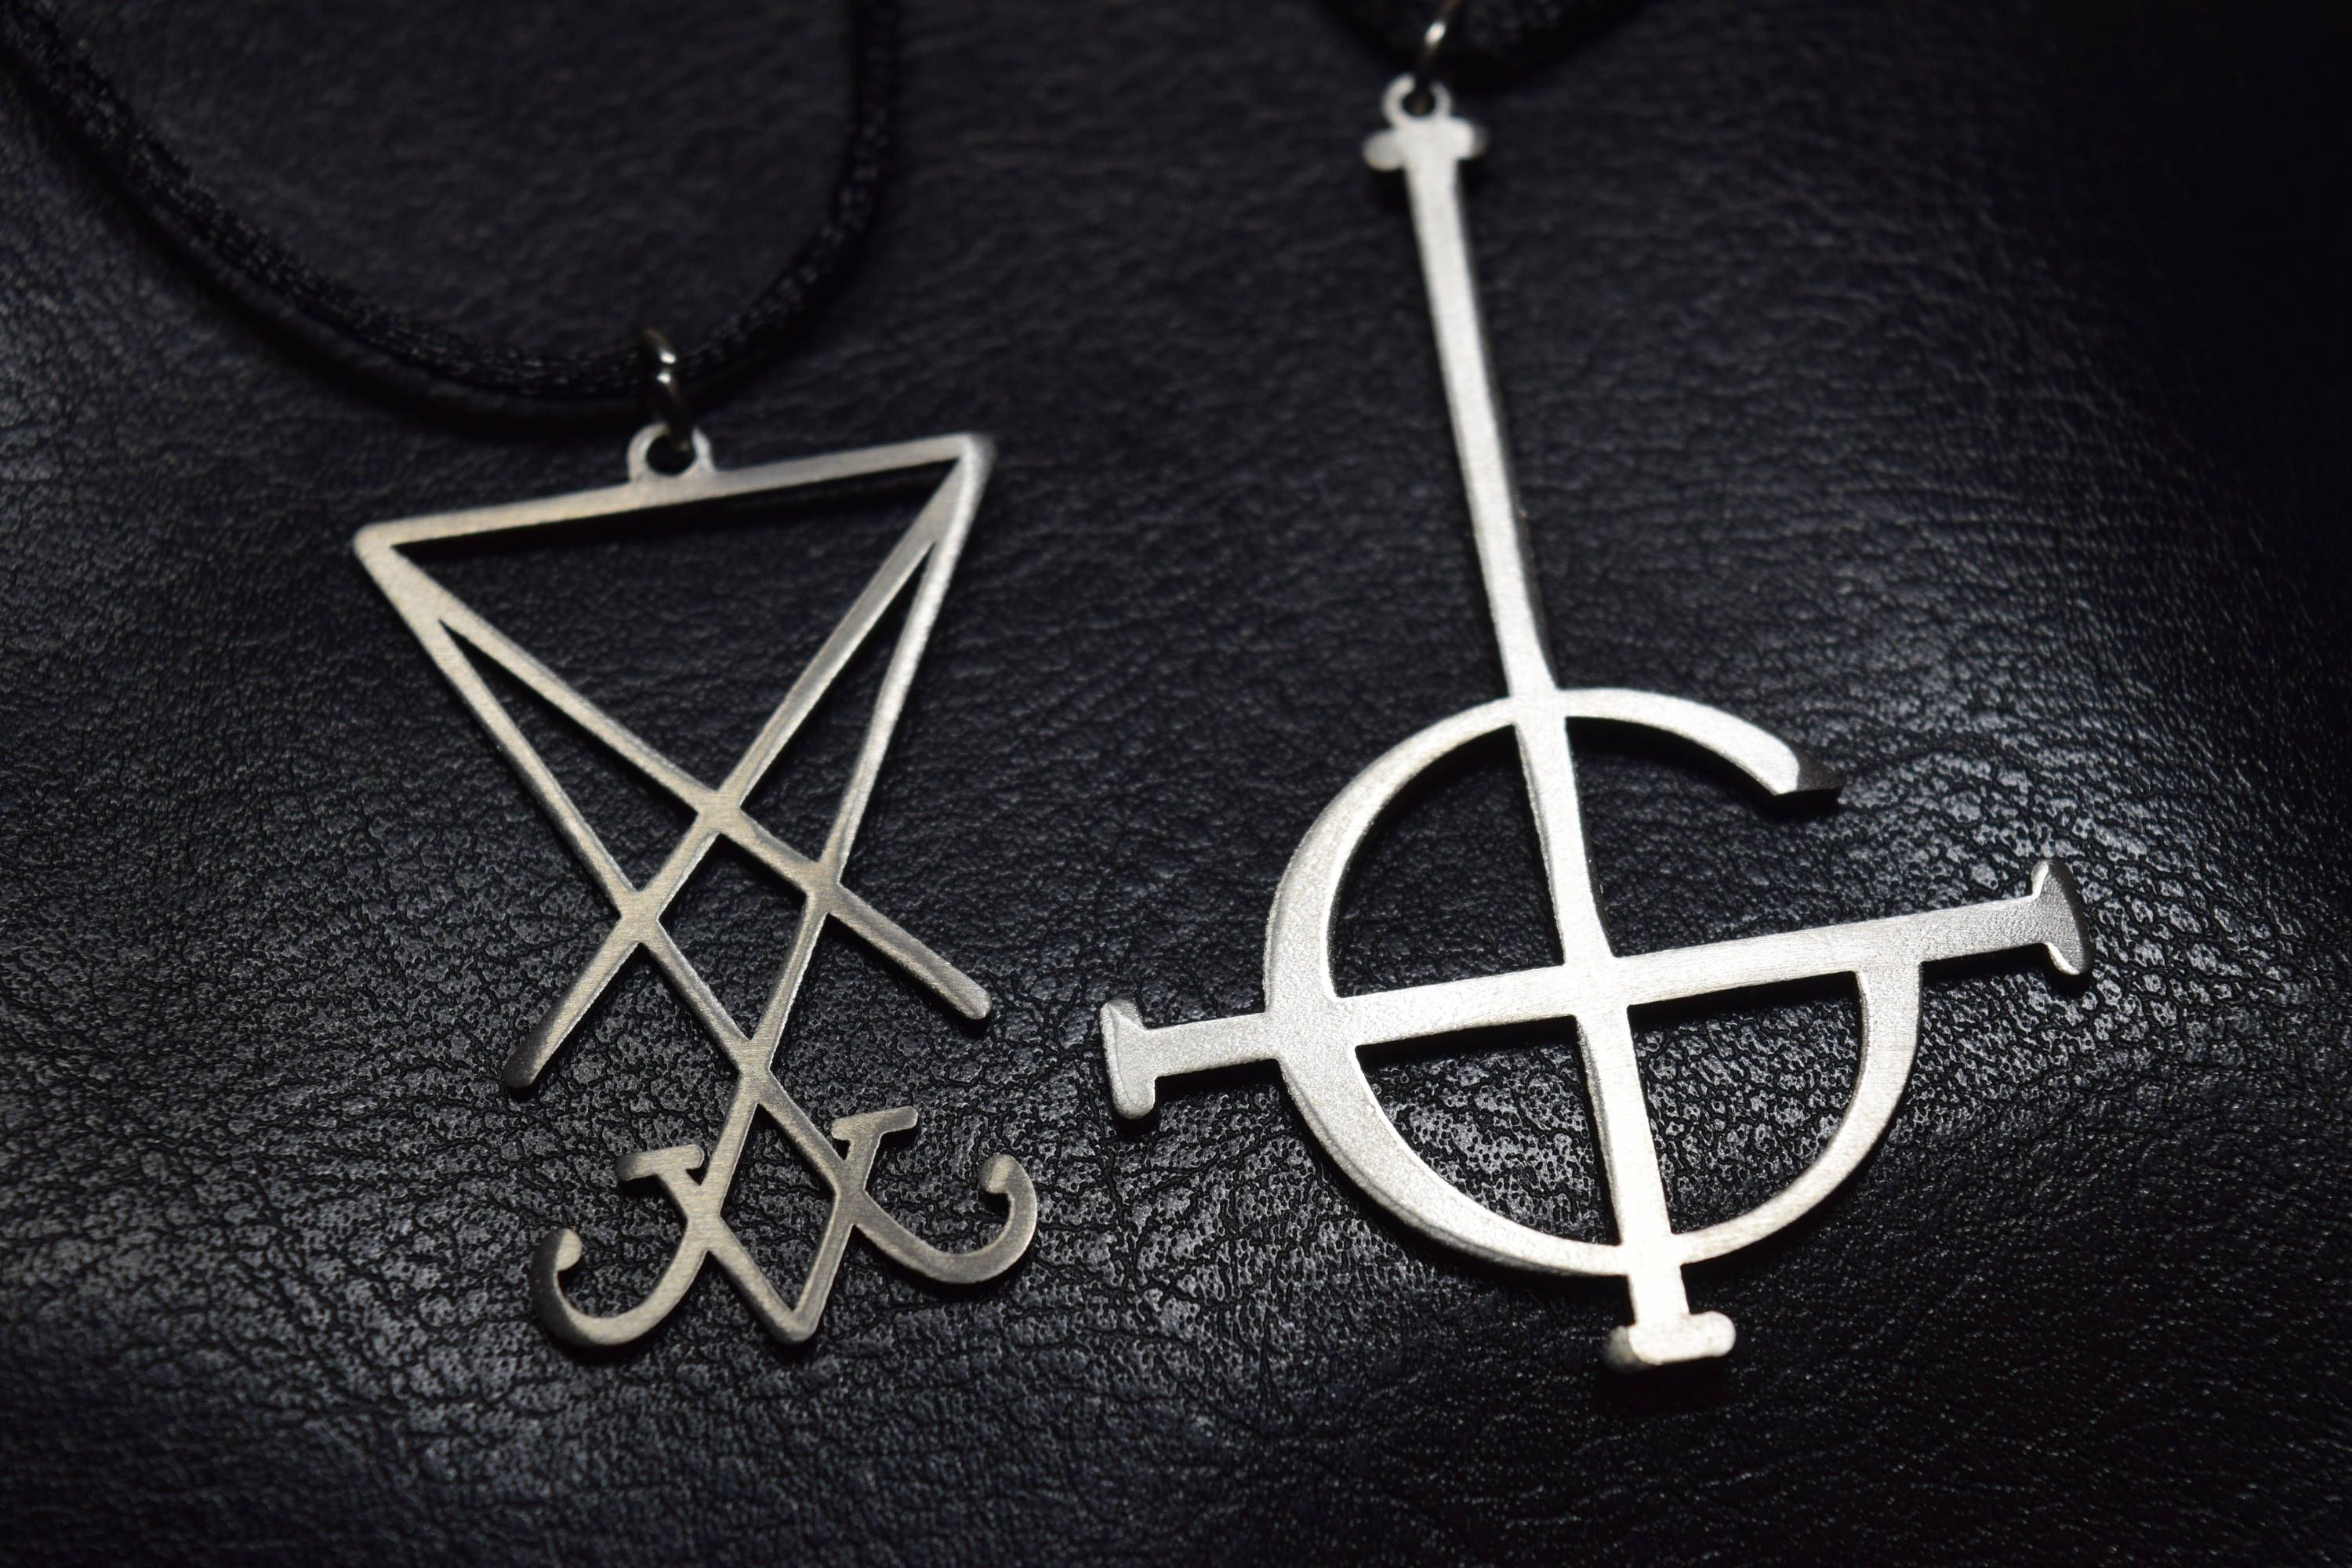 Grucifix sigil of lucifer grucifix ghost band charm sign medallion grucifix sigil of lucifer grucifix ghost band charm sign medallion pendant satanic symbol jewelry seal of satan necklace logo nameless ghoul biocorpaavc Choice Image